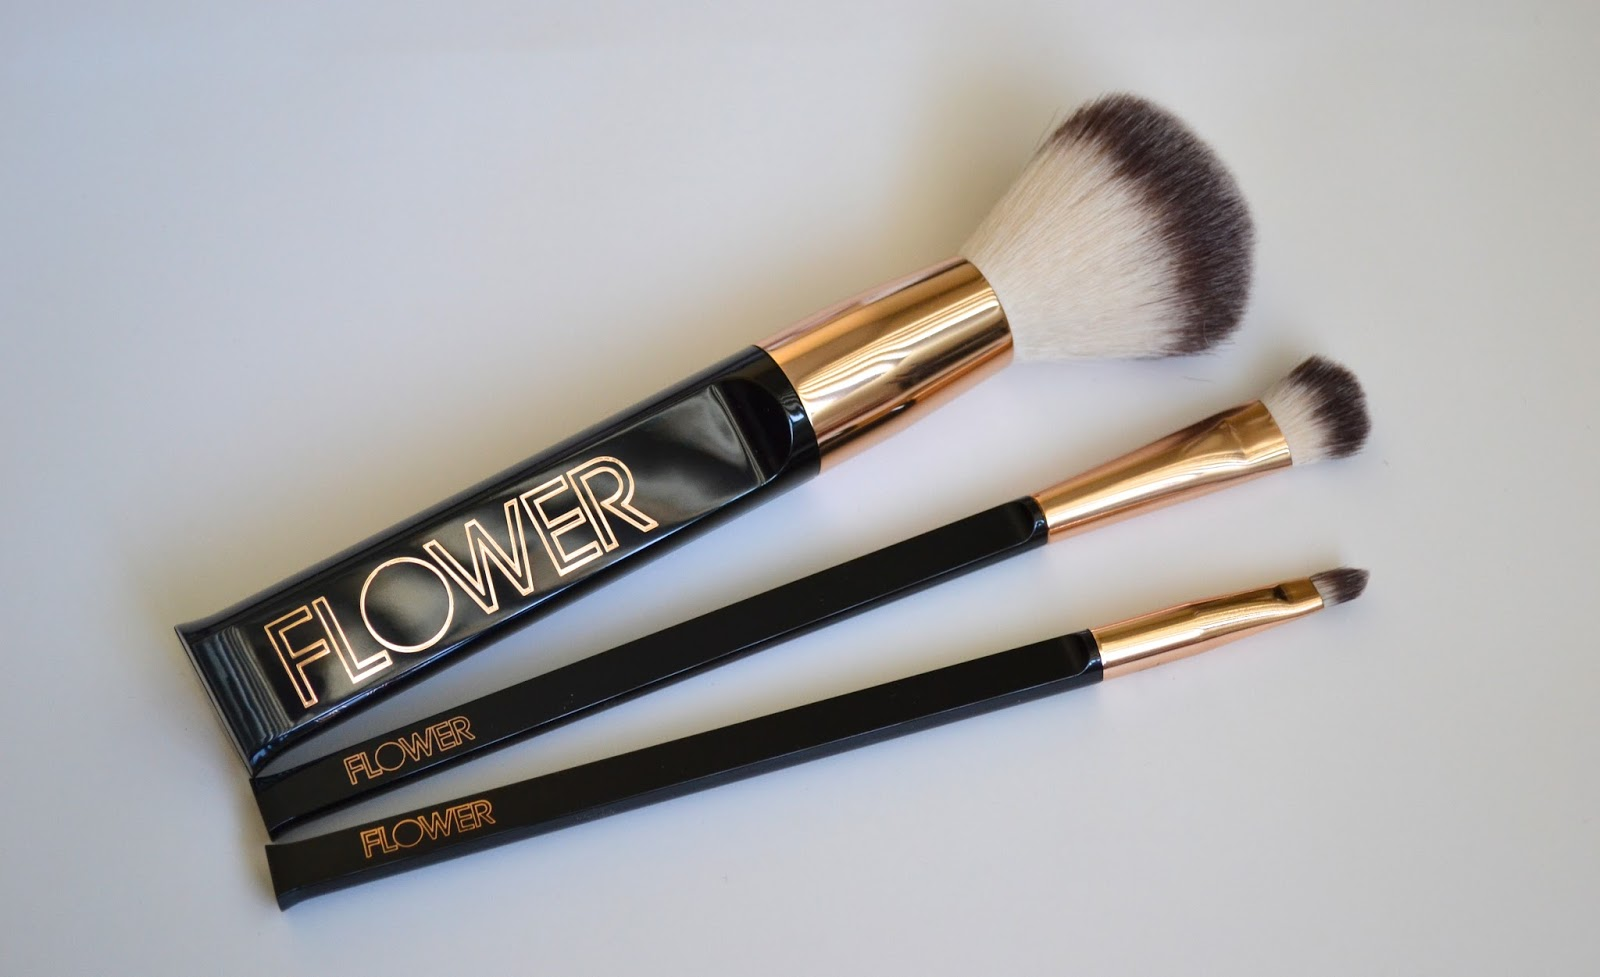 Today I have a review of some Flower Beauty Makeup Brushes that I recently bought at Walmart. I ended up getting these for a discounted price since they ...